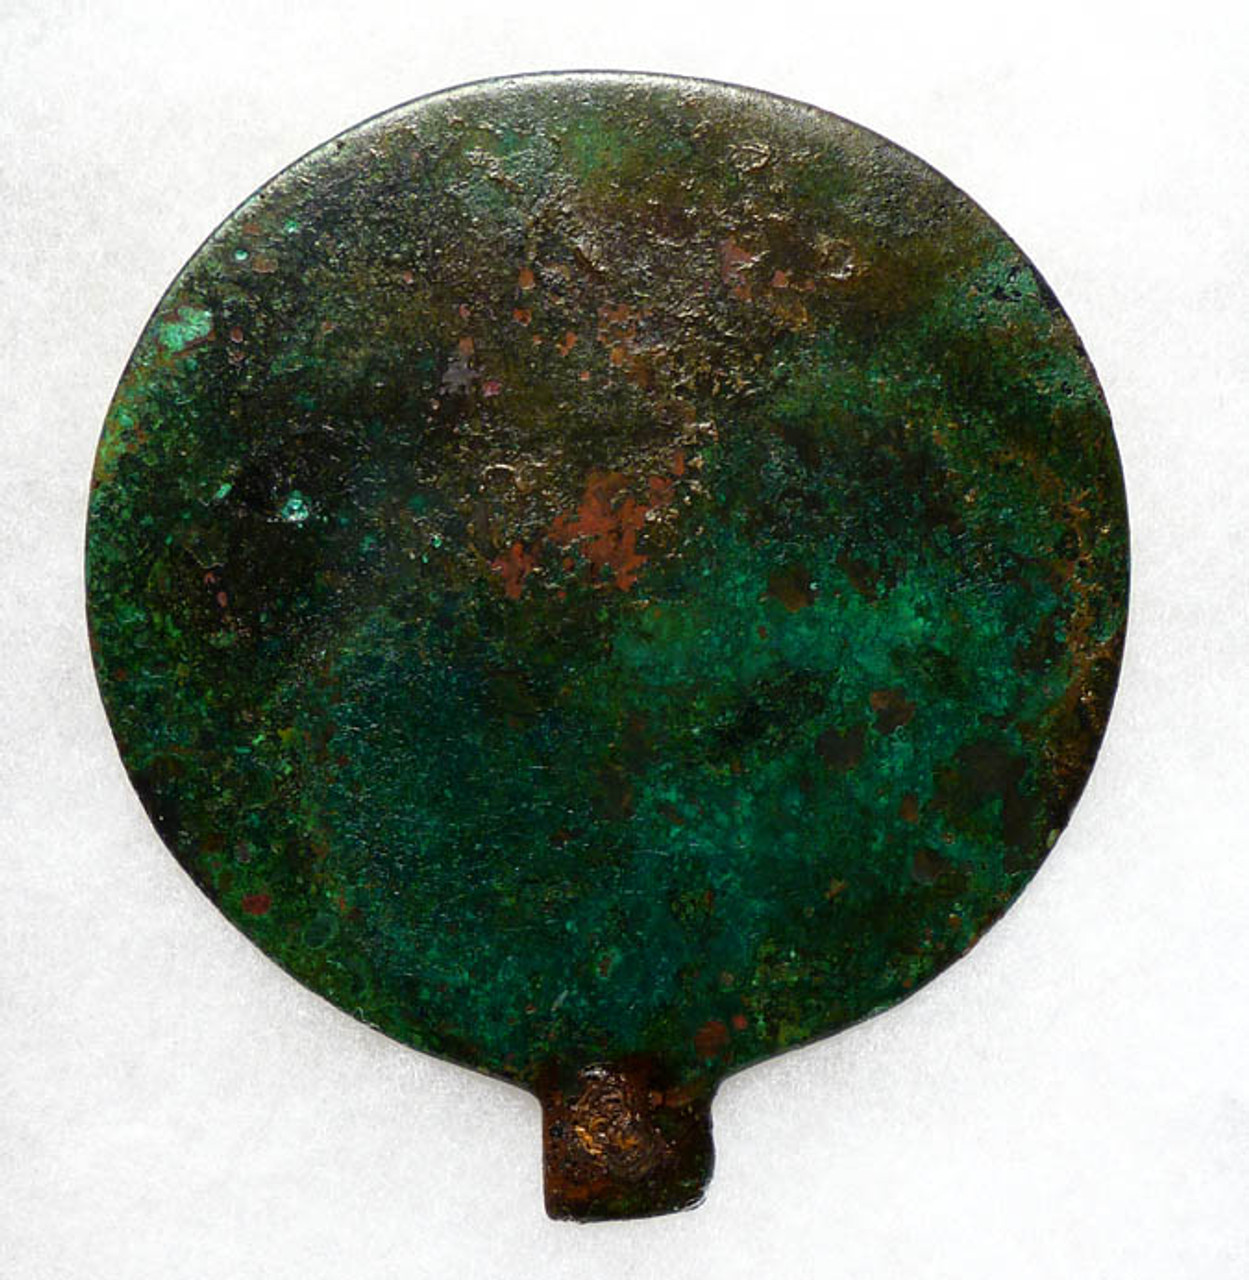 NE038 - SUPERB COMPLETE ANCIENT LURISTAN BRONZE LARGE COSMETIC REFLECTING MIRROR WITH INTACT IRON HANDLE MOUNT PIN